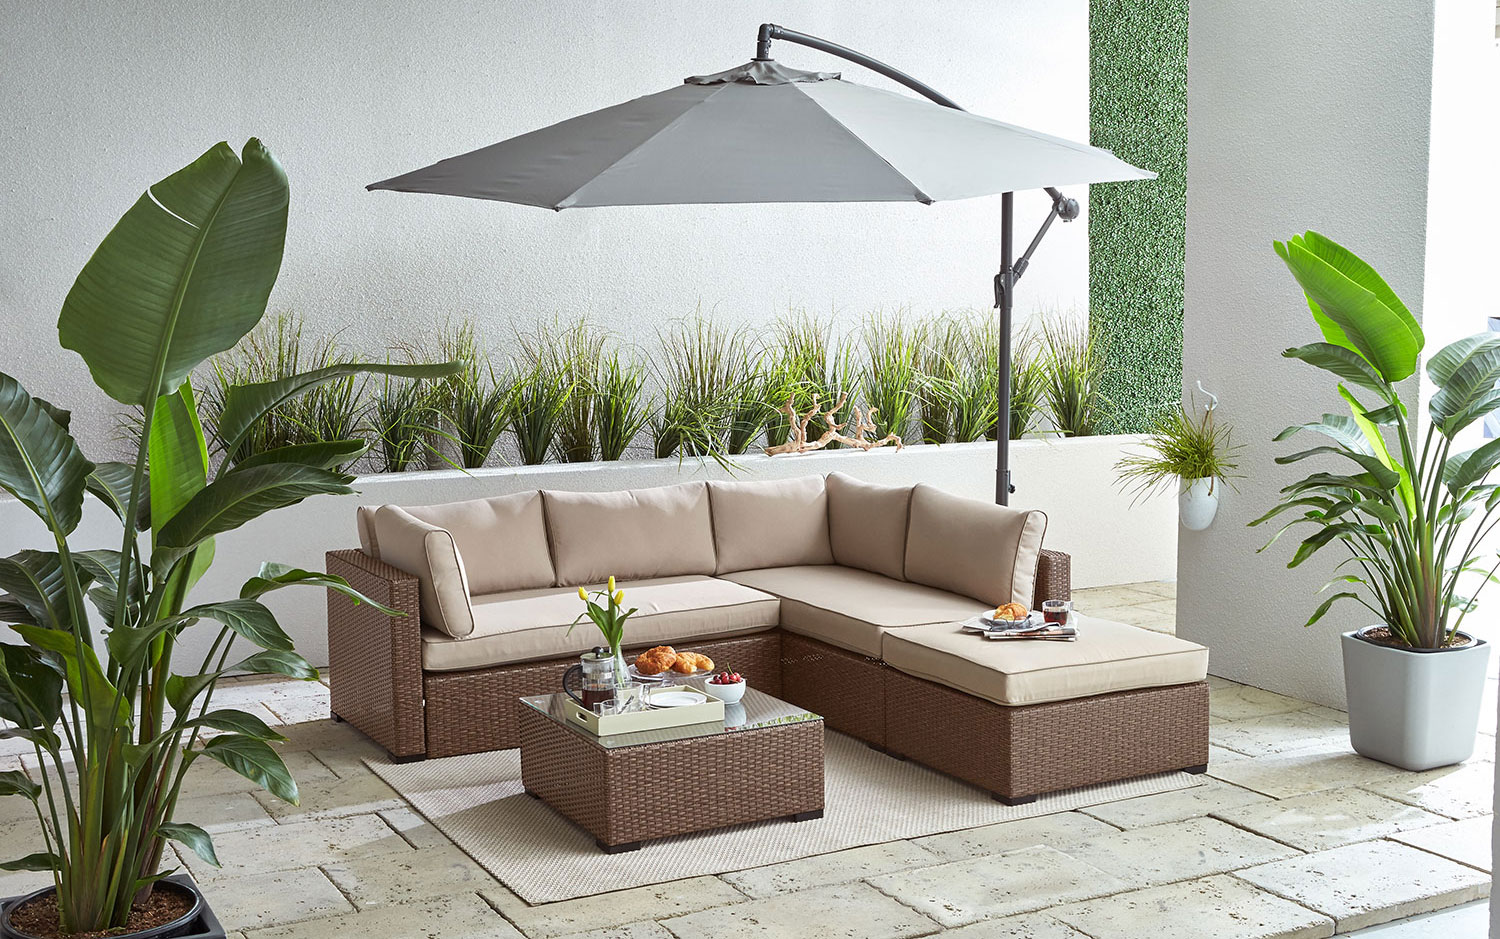 Caribe Outdoor Sectional with Ottoman and Coffee Table Set - Beige and Light Brown